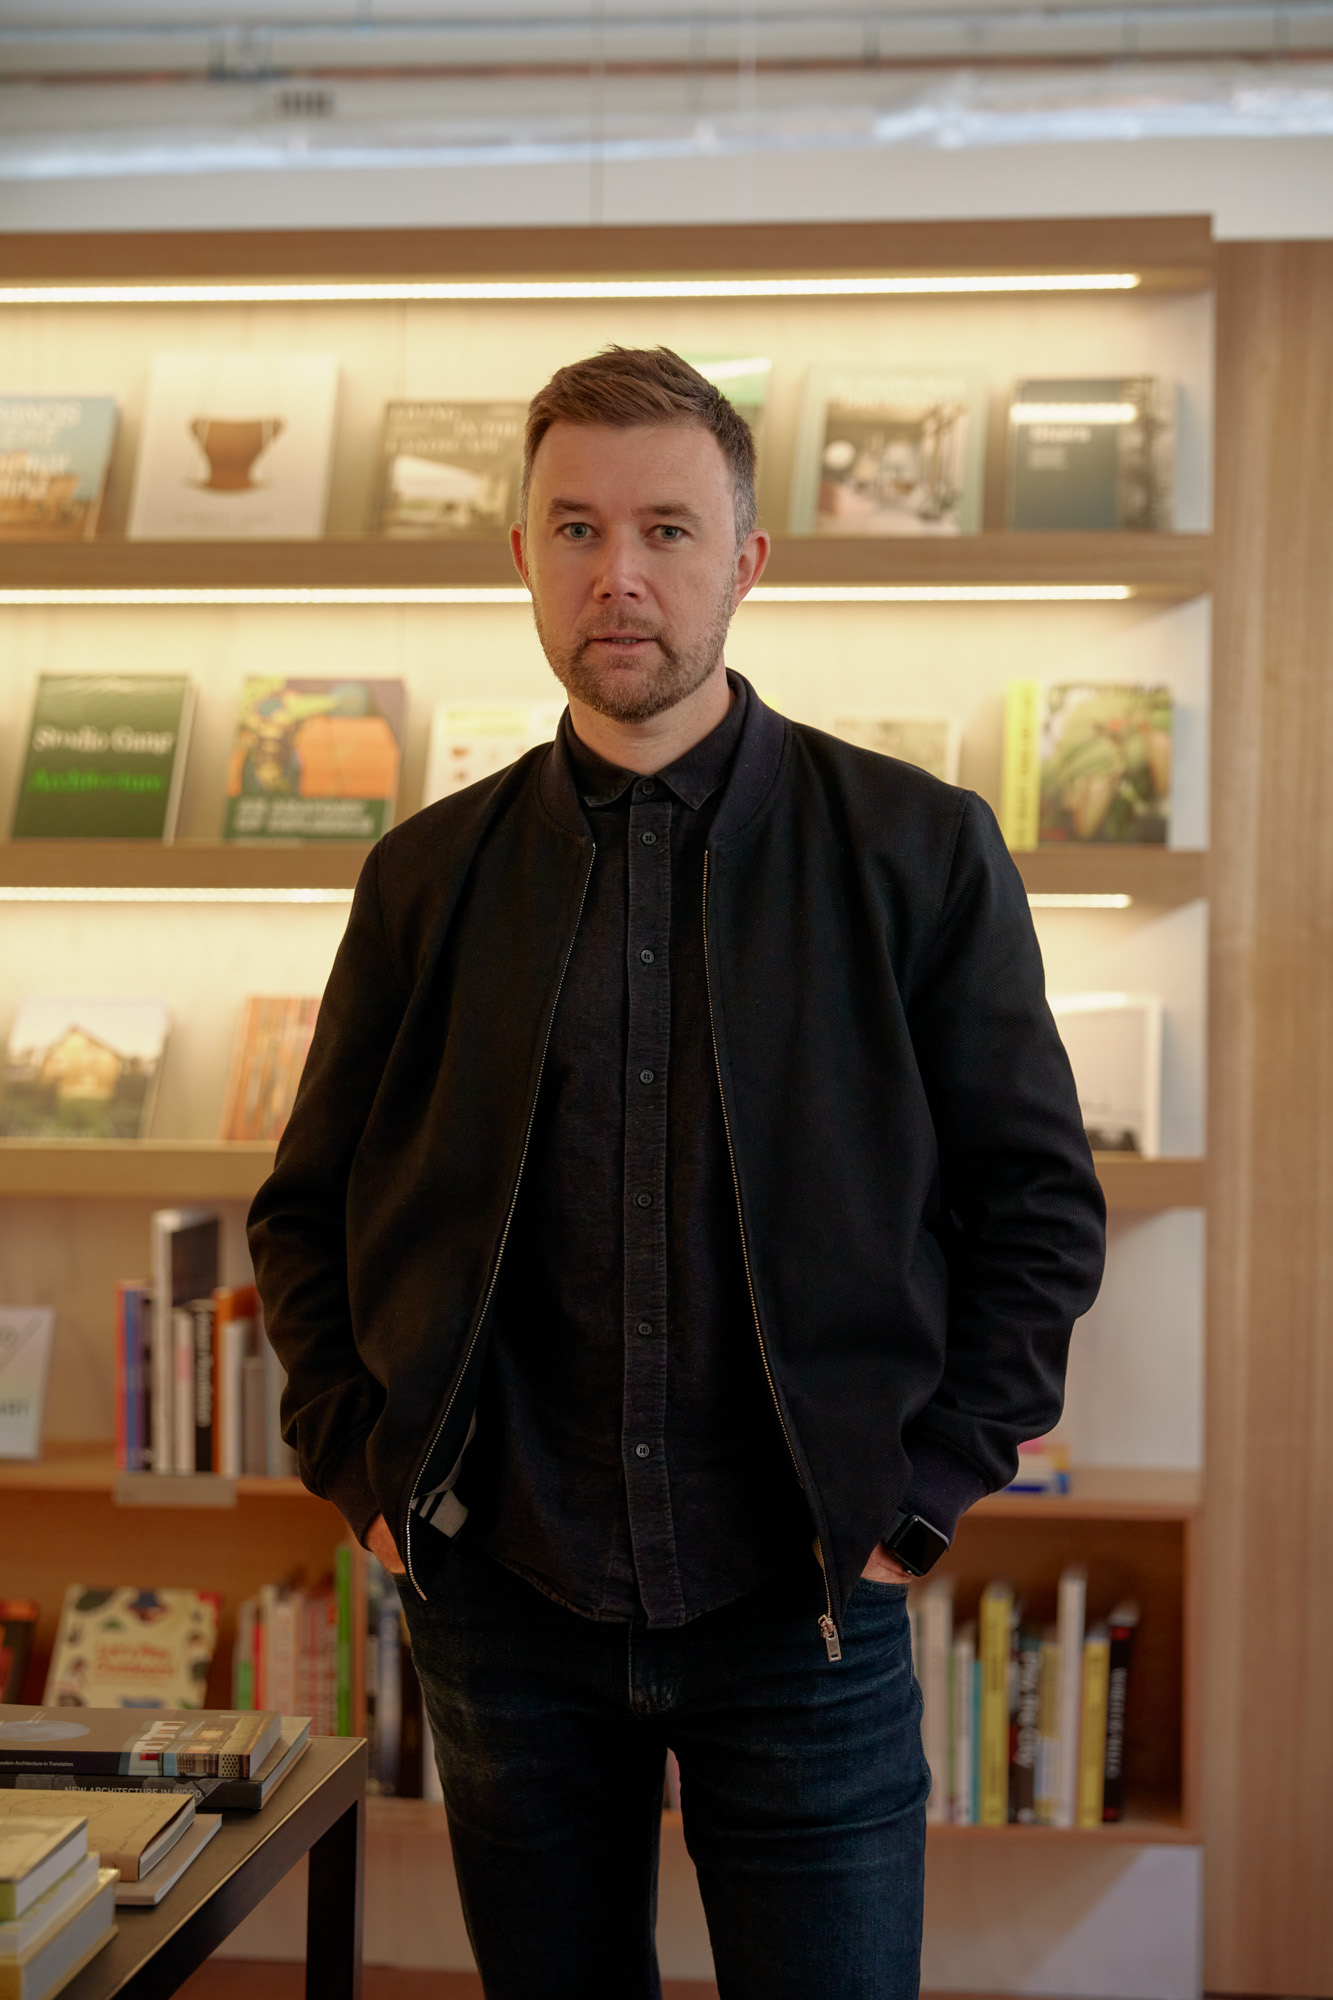 Matieu Ward, publisher and bookseller stands in the Bookshop by Uro tenancy space